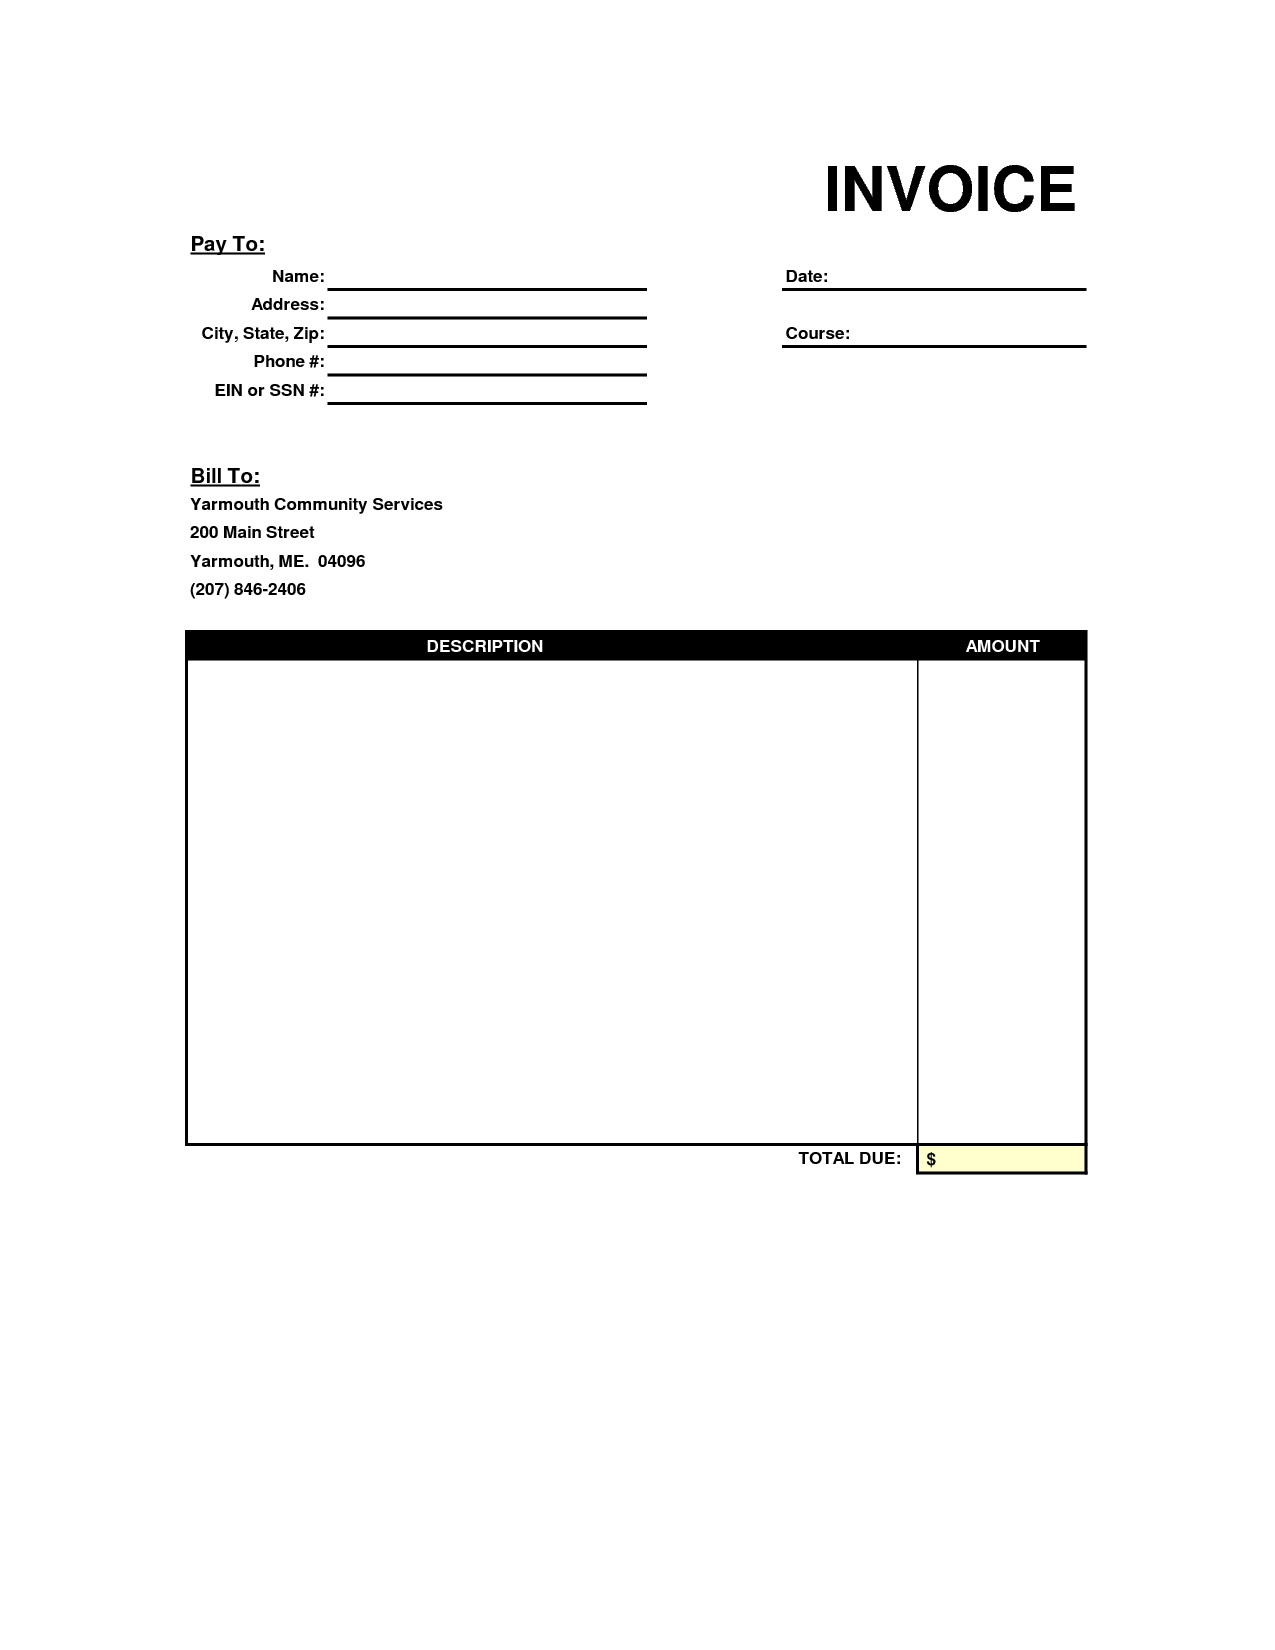 Blank Printable Invoice Template and Invoice Blank form Free Printable Printable Invoice Template